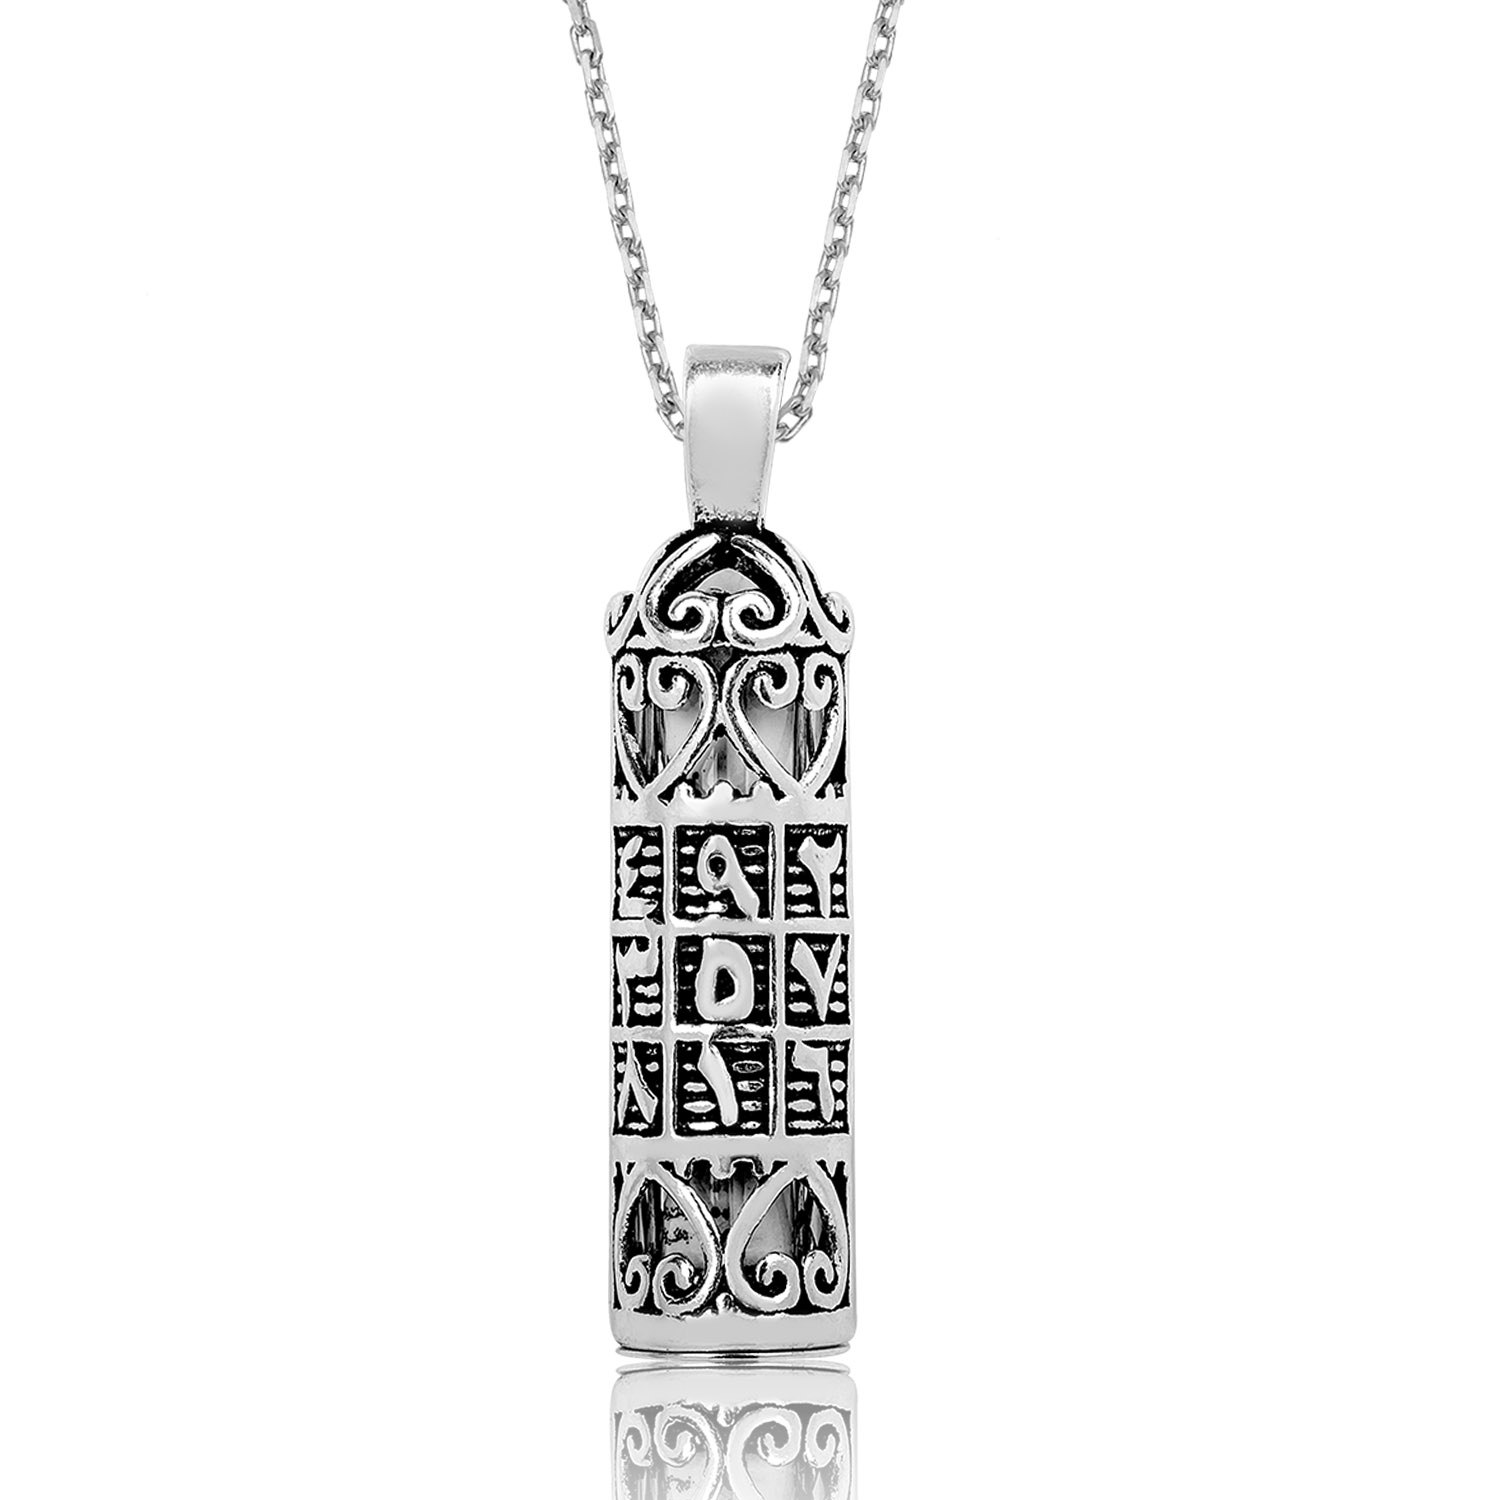 Letters silver amulet pendants ebced islamic jewelry storeislamic letters silver amulet pendants ebced ij1 1646 islamic jewelry aloadofball Images